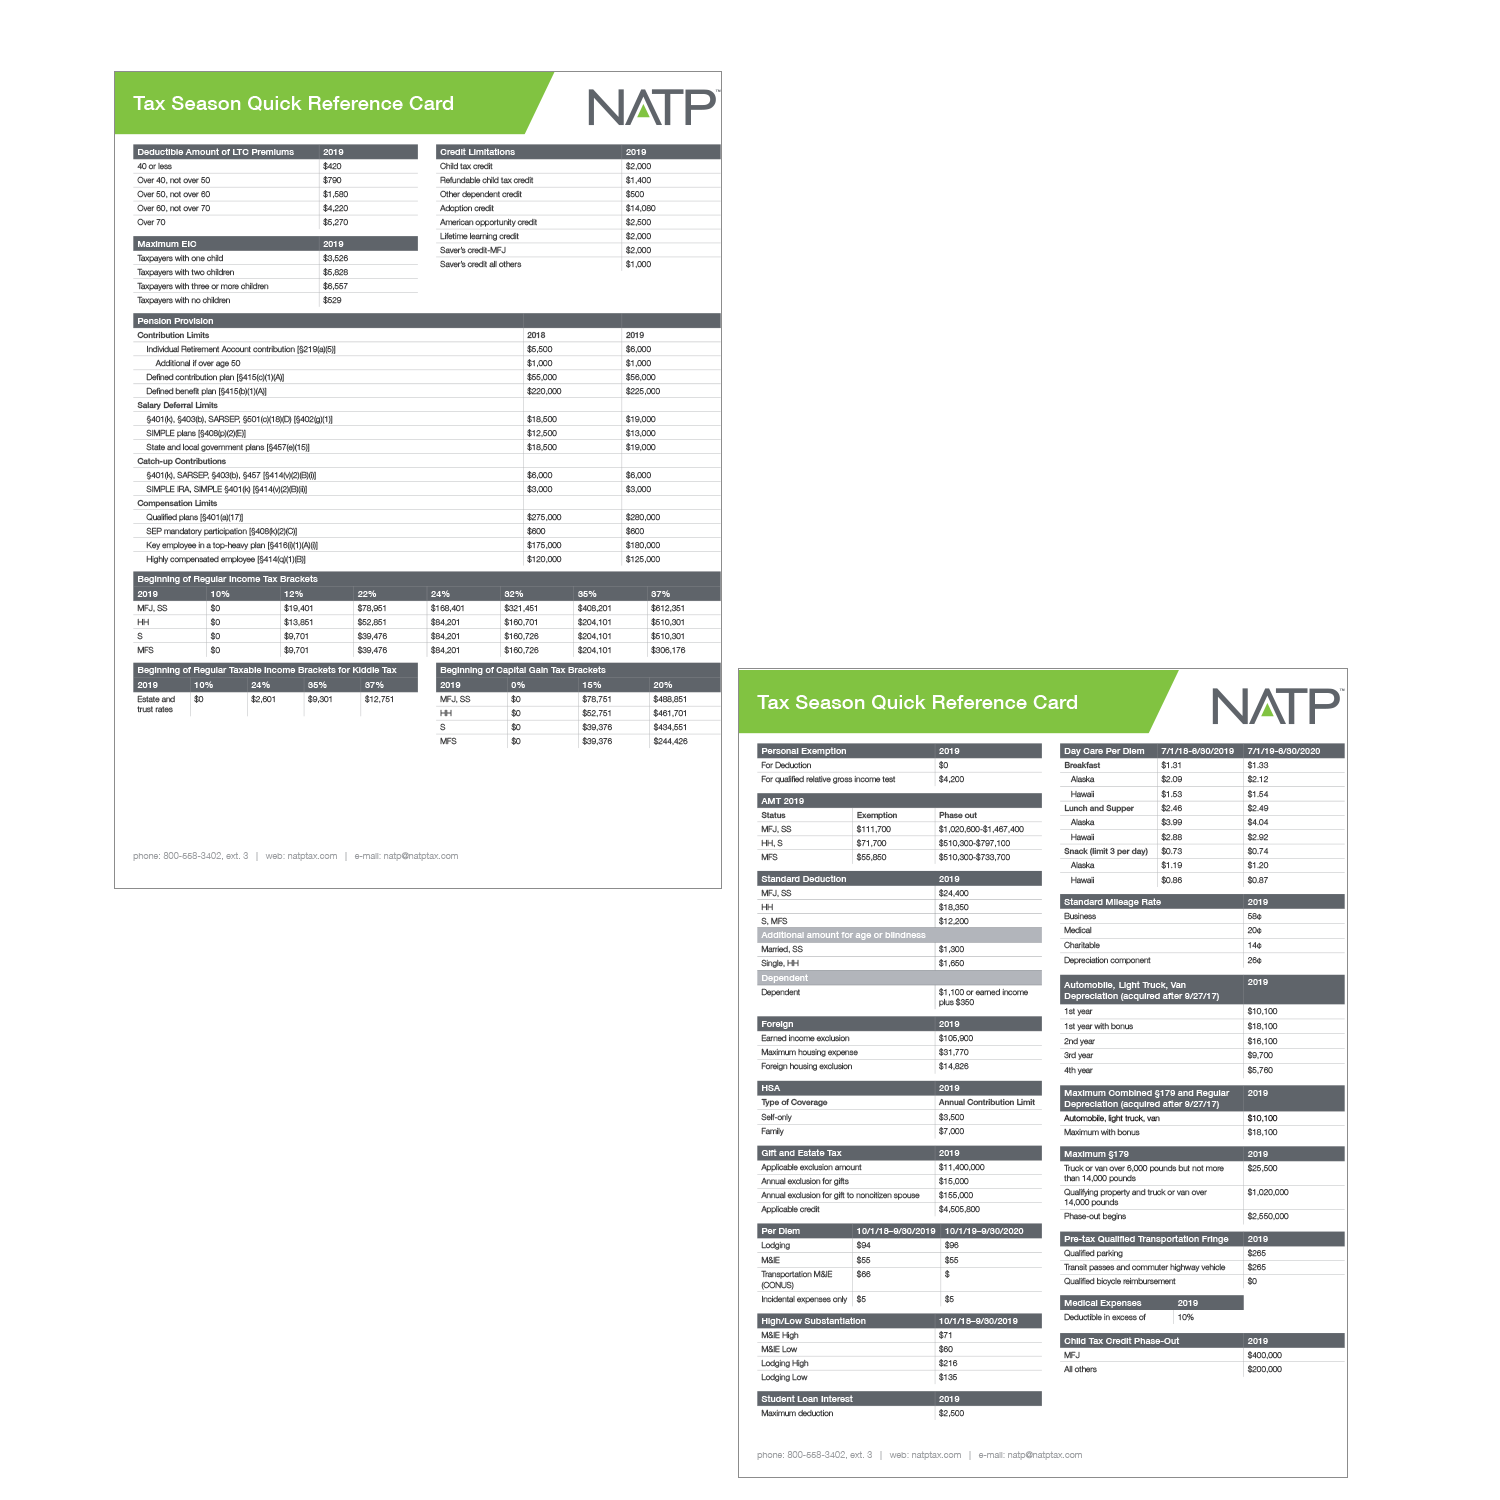 Tax Season Quick Reference Card (2019) - #199